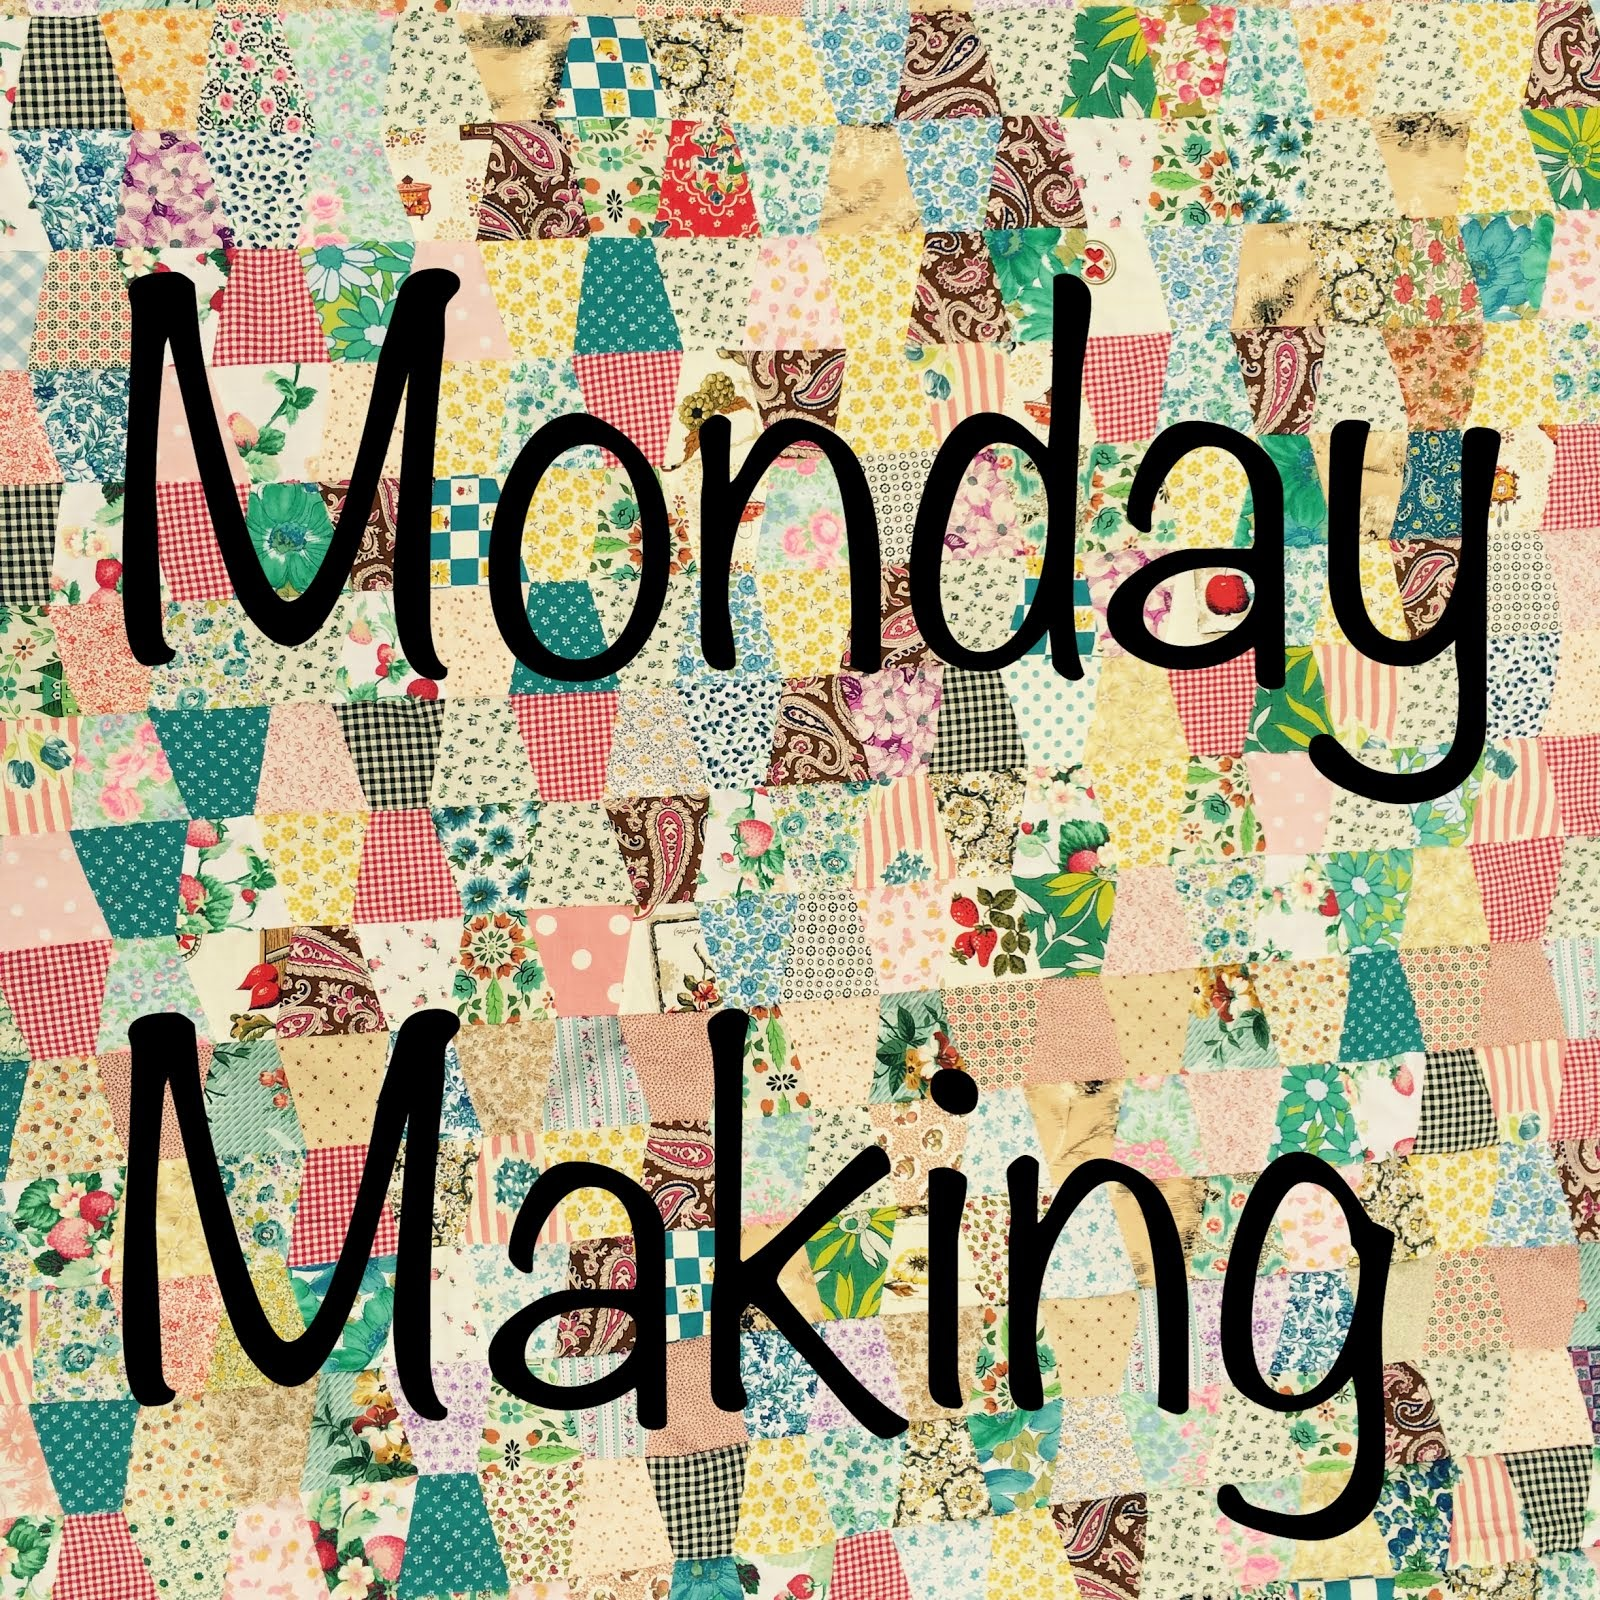 What are you making this week?